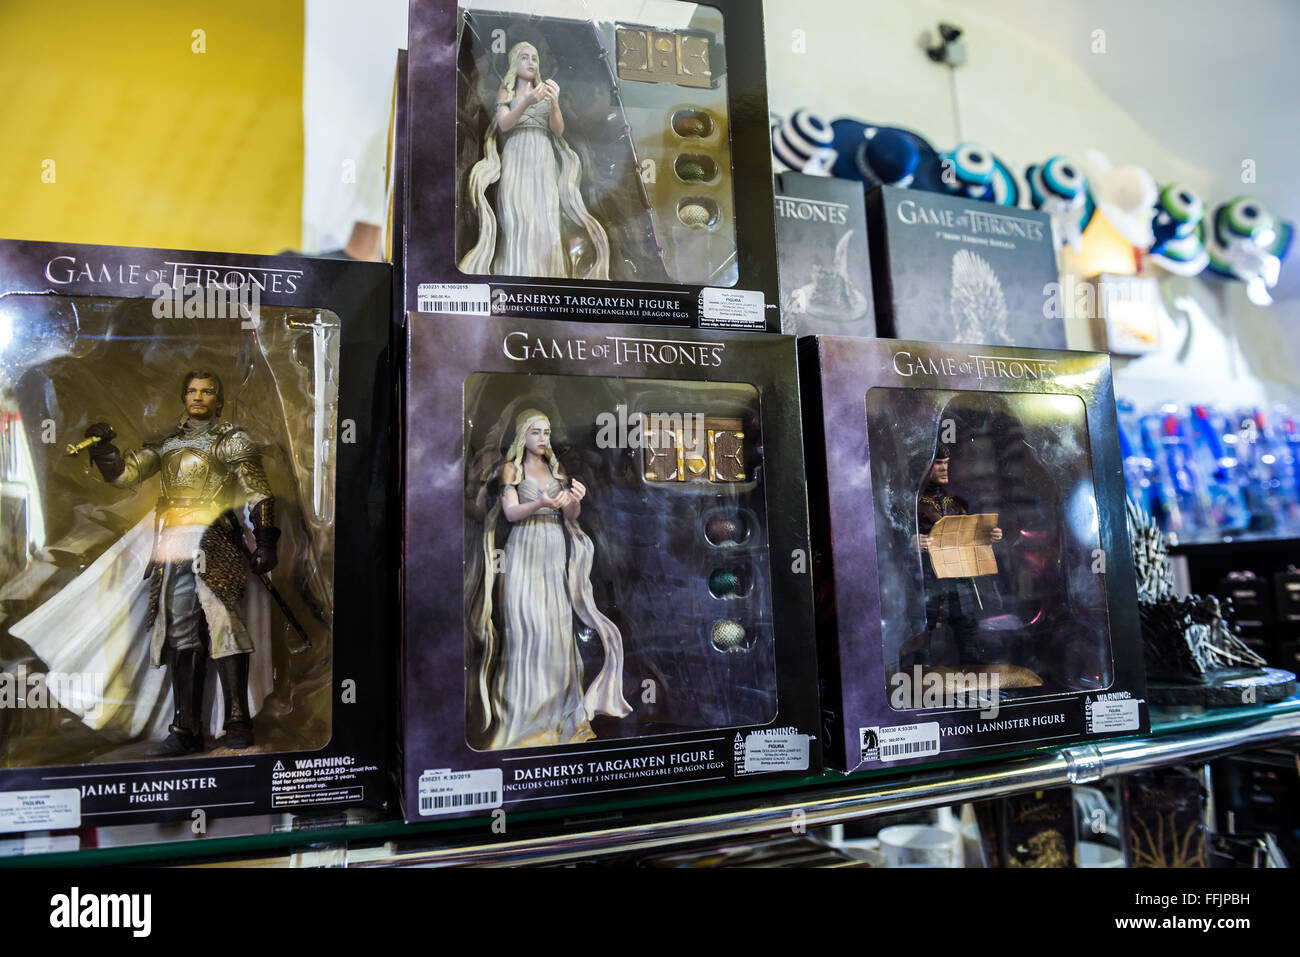 Daenerys Targaryen and Jaime Lannister figures from Game of ...